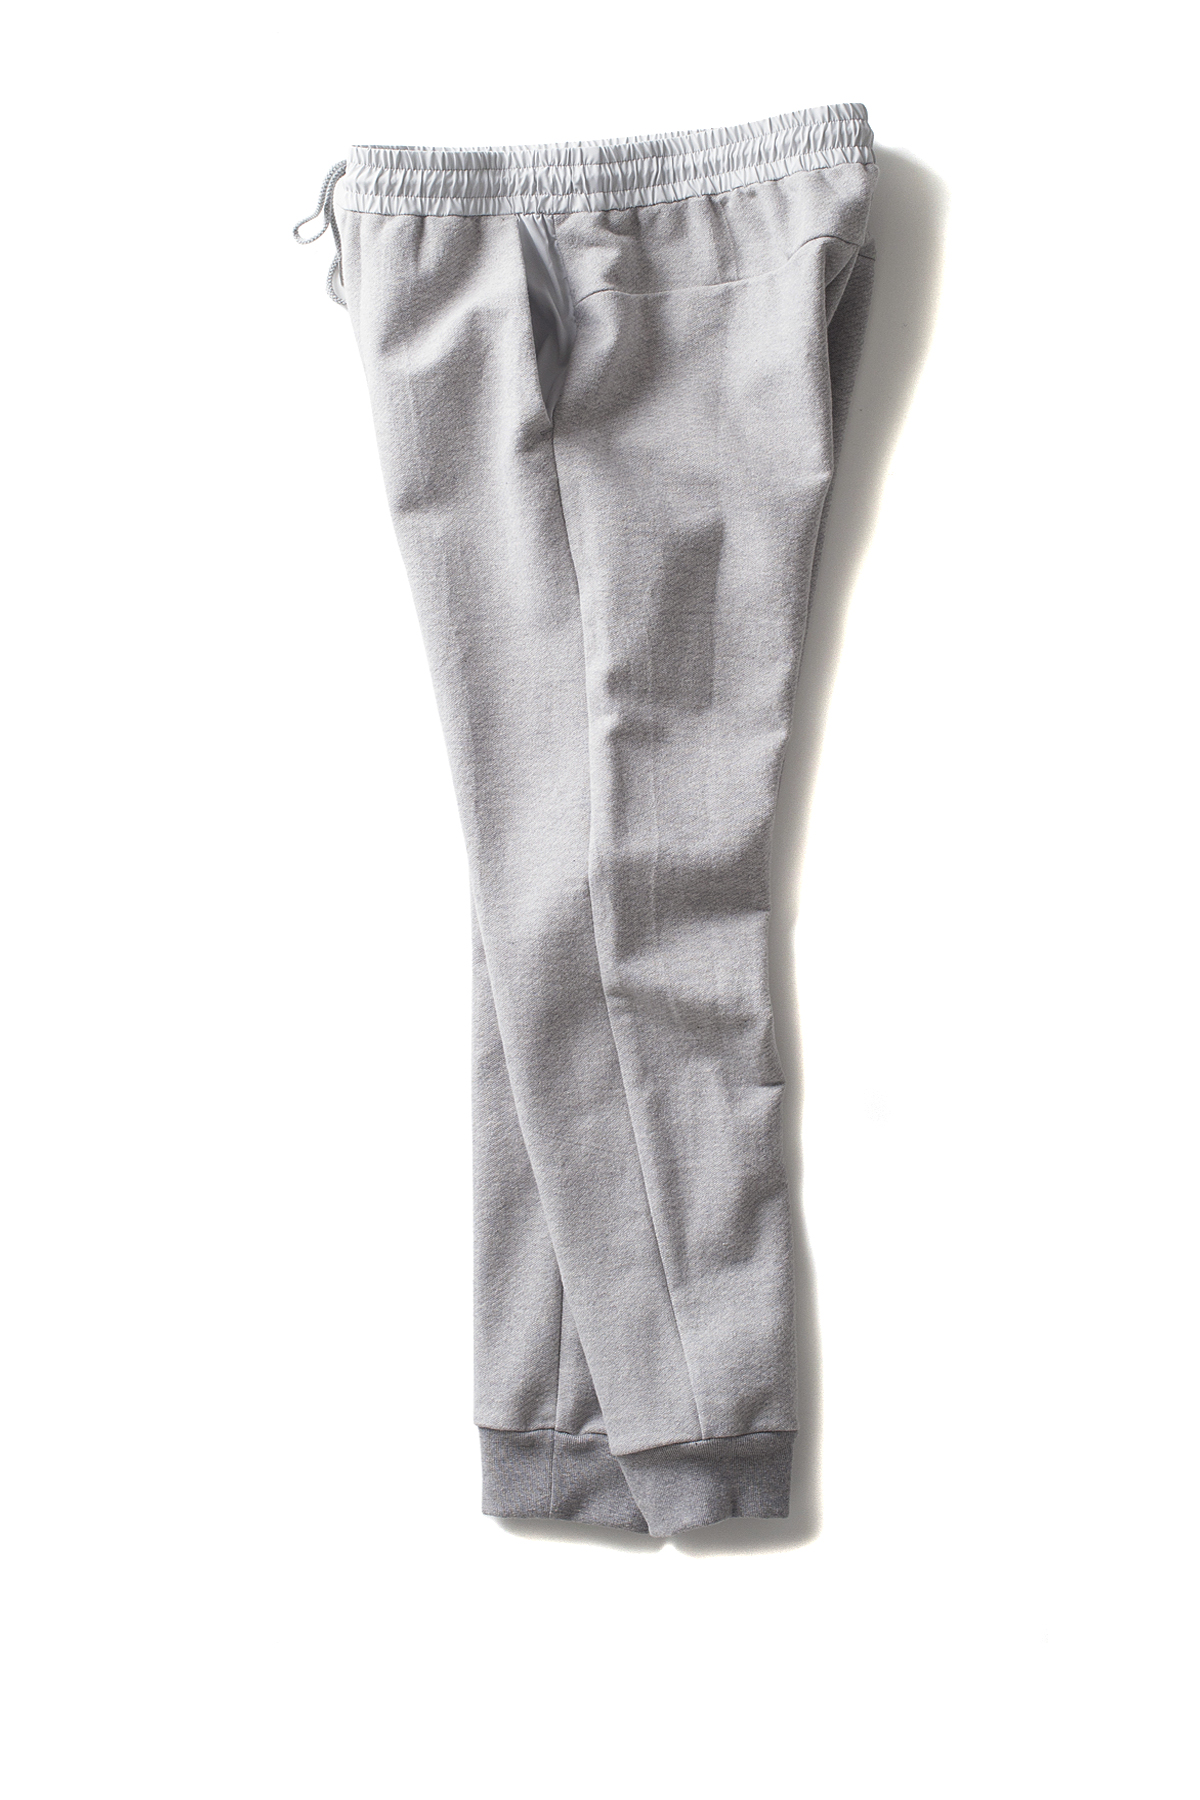 nanamica : Sweat Pants (Heather Grey)